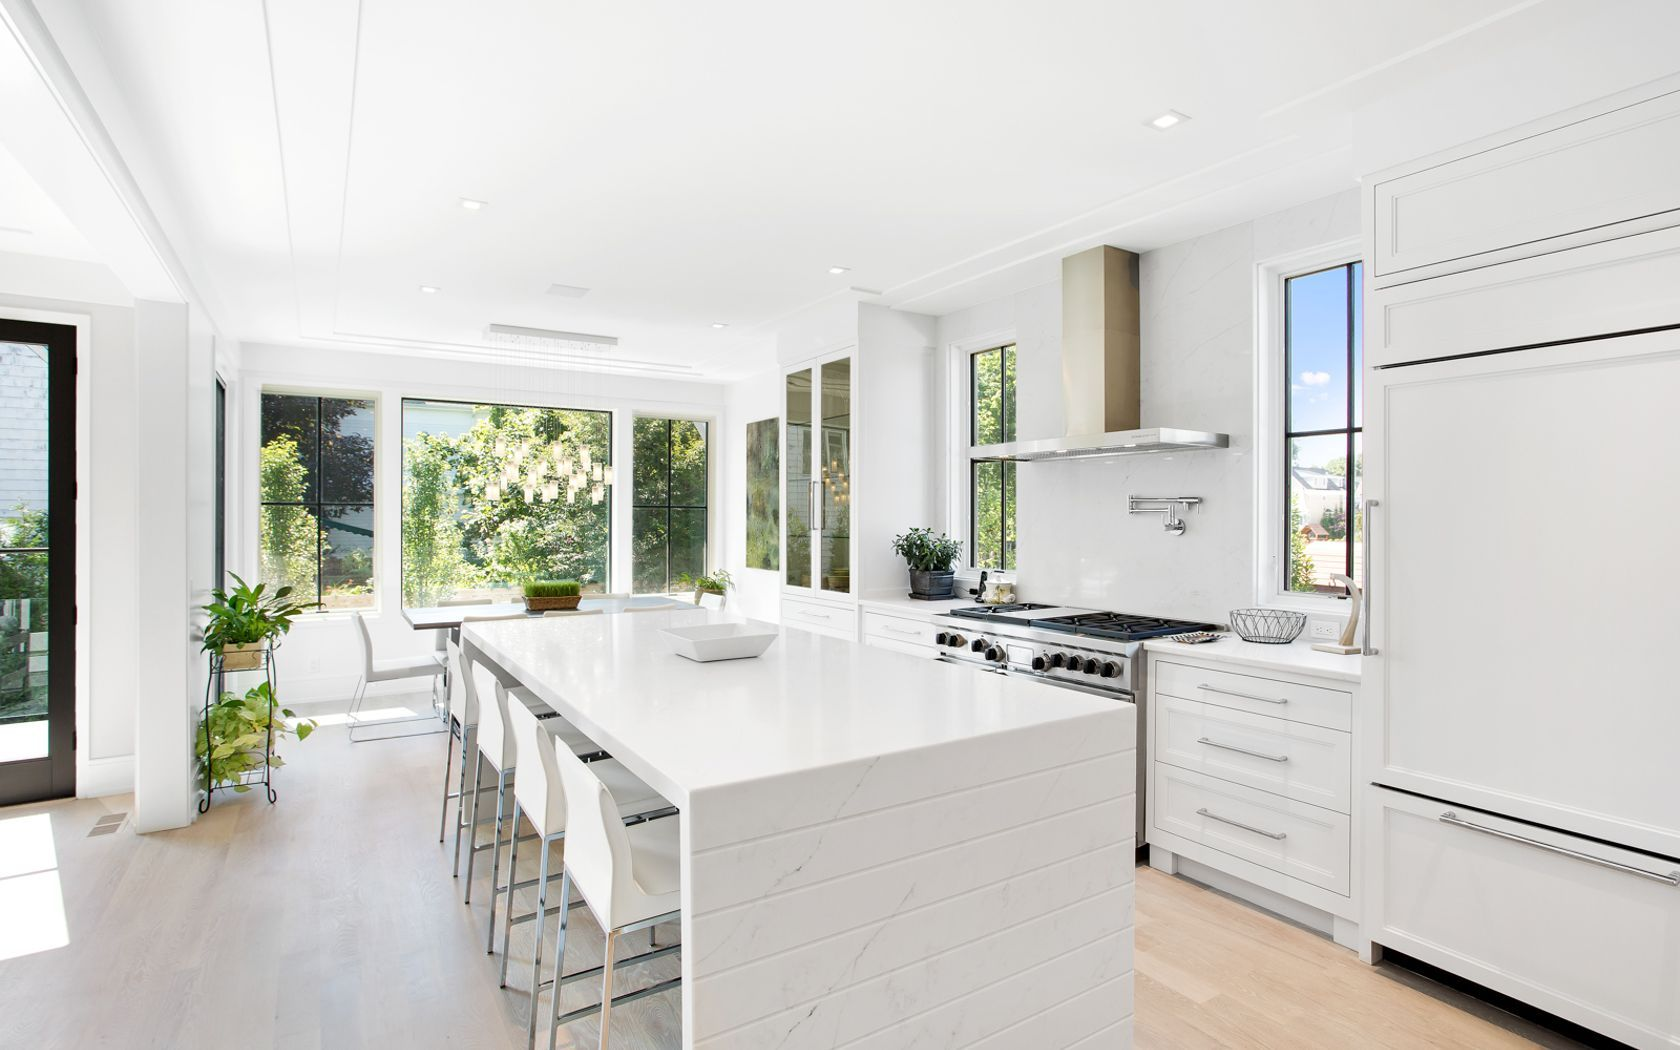 Modern White Kitchen With Beautiful Waterfall Island Stepped Drywall Ceiling A True Gem White Modern Kitchen Home Decor Kitchen White Kitchen Rustic